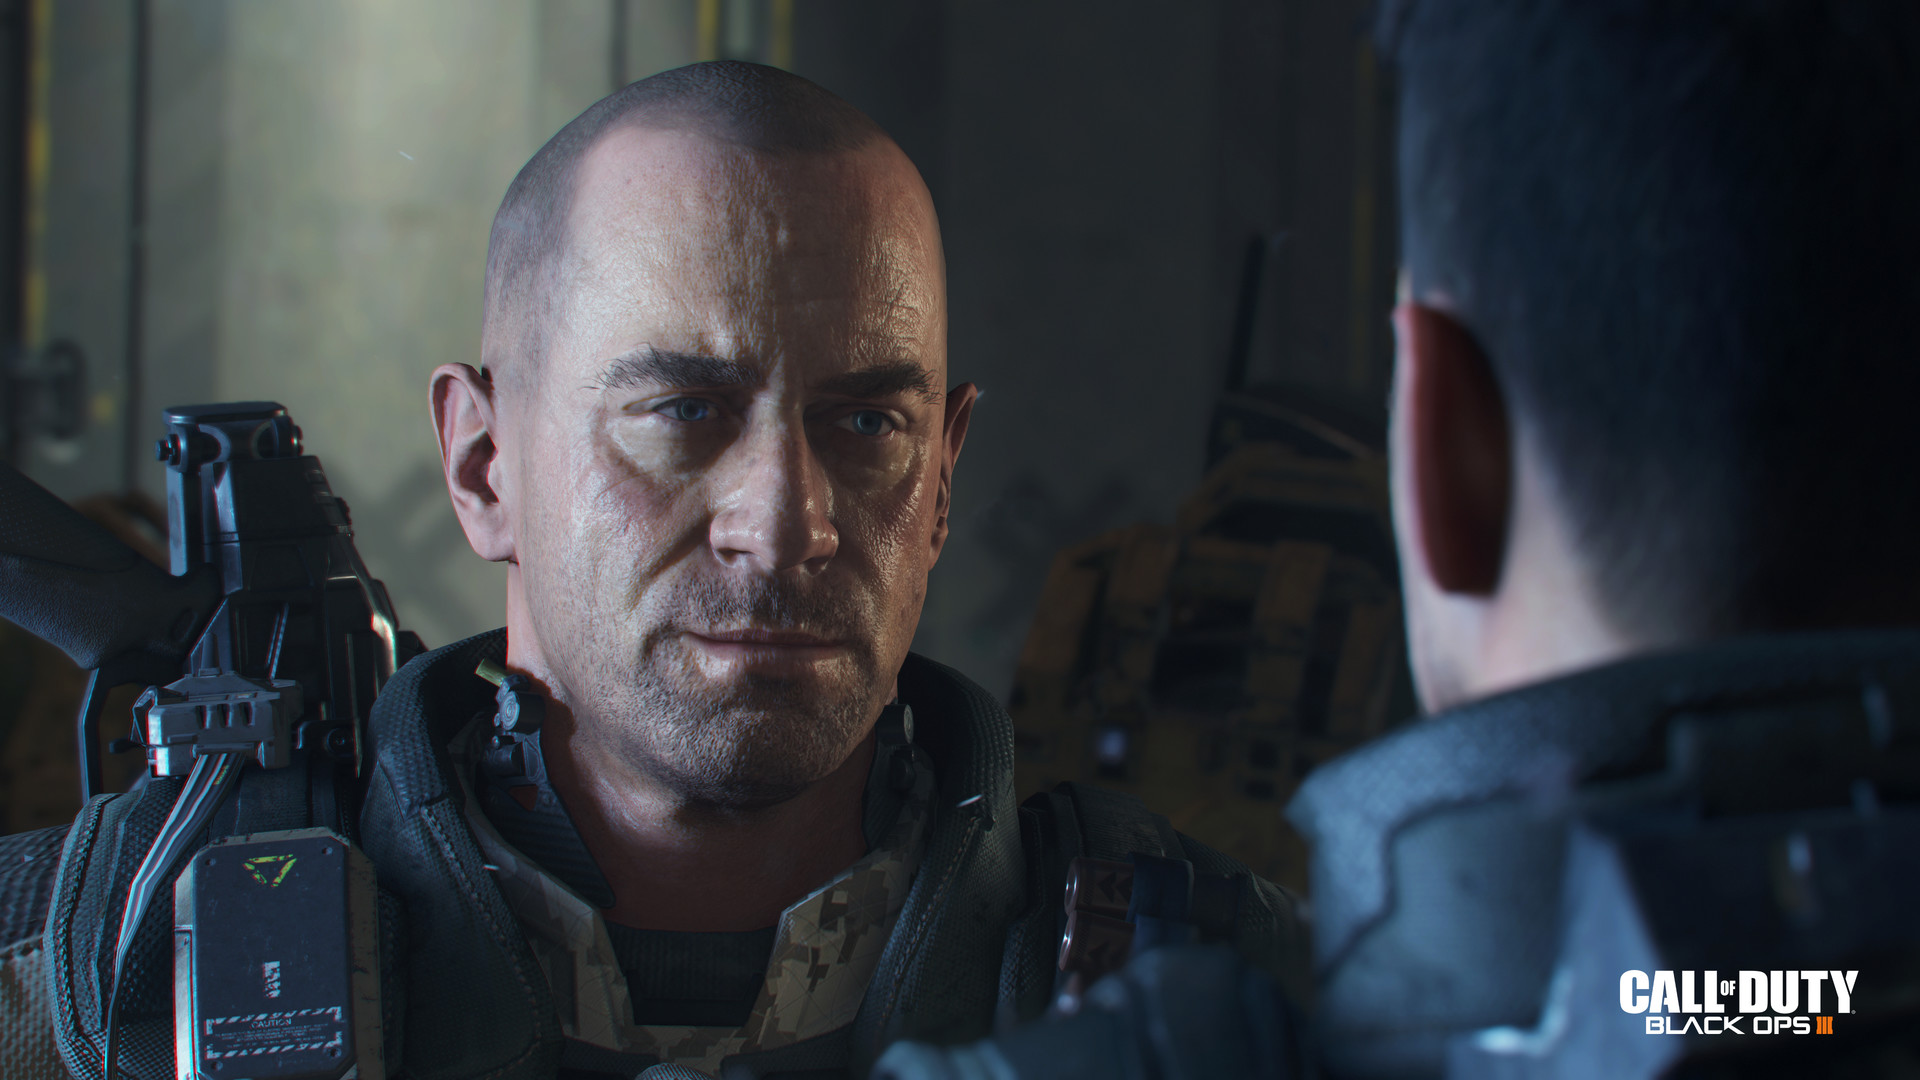 call-of-duty-black-ops-iii-descent-dlc-features